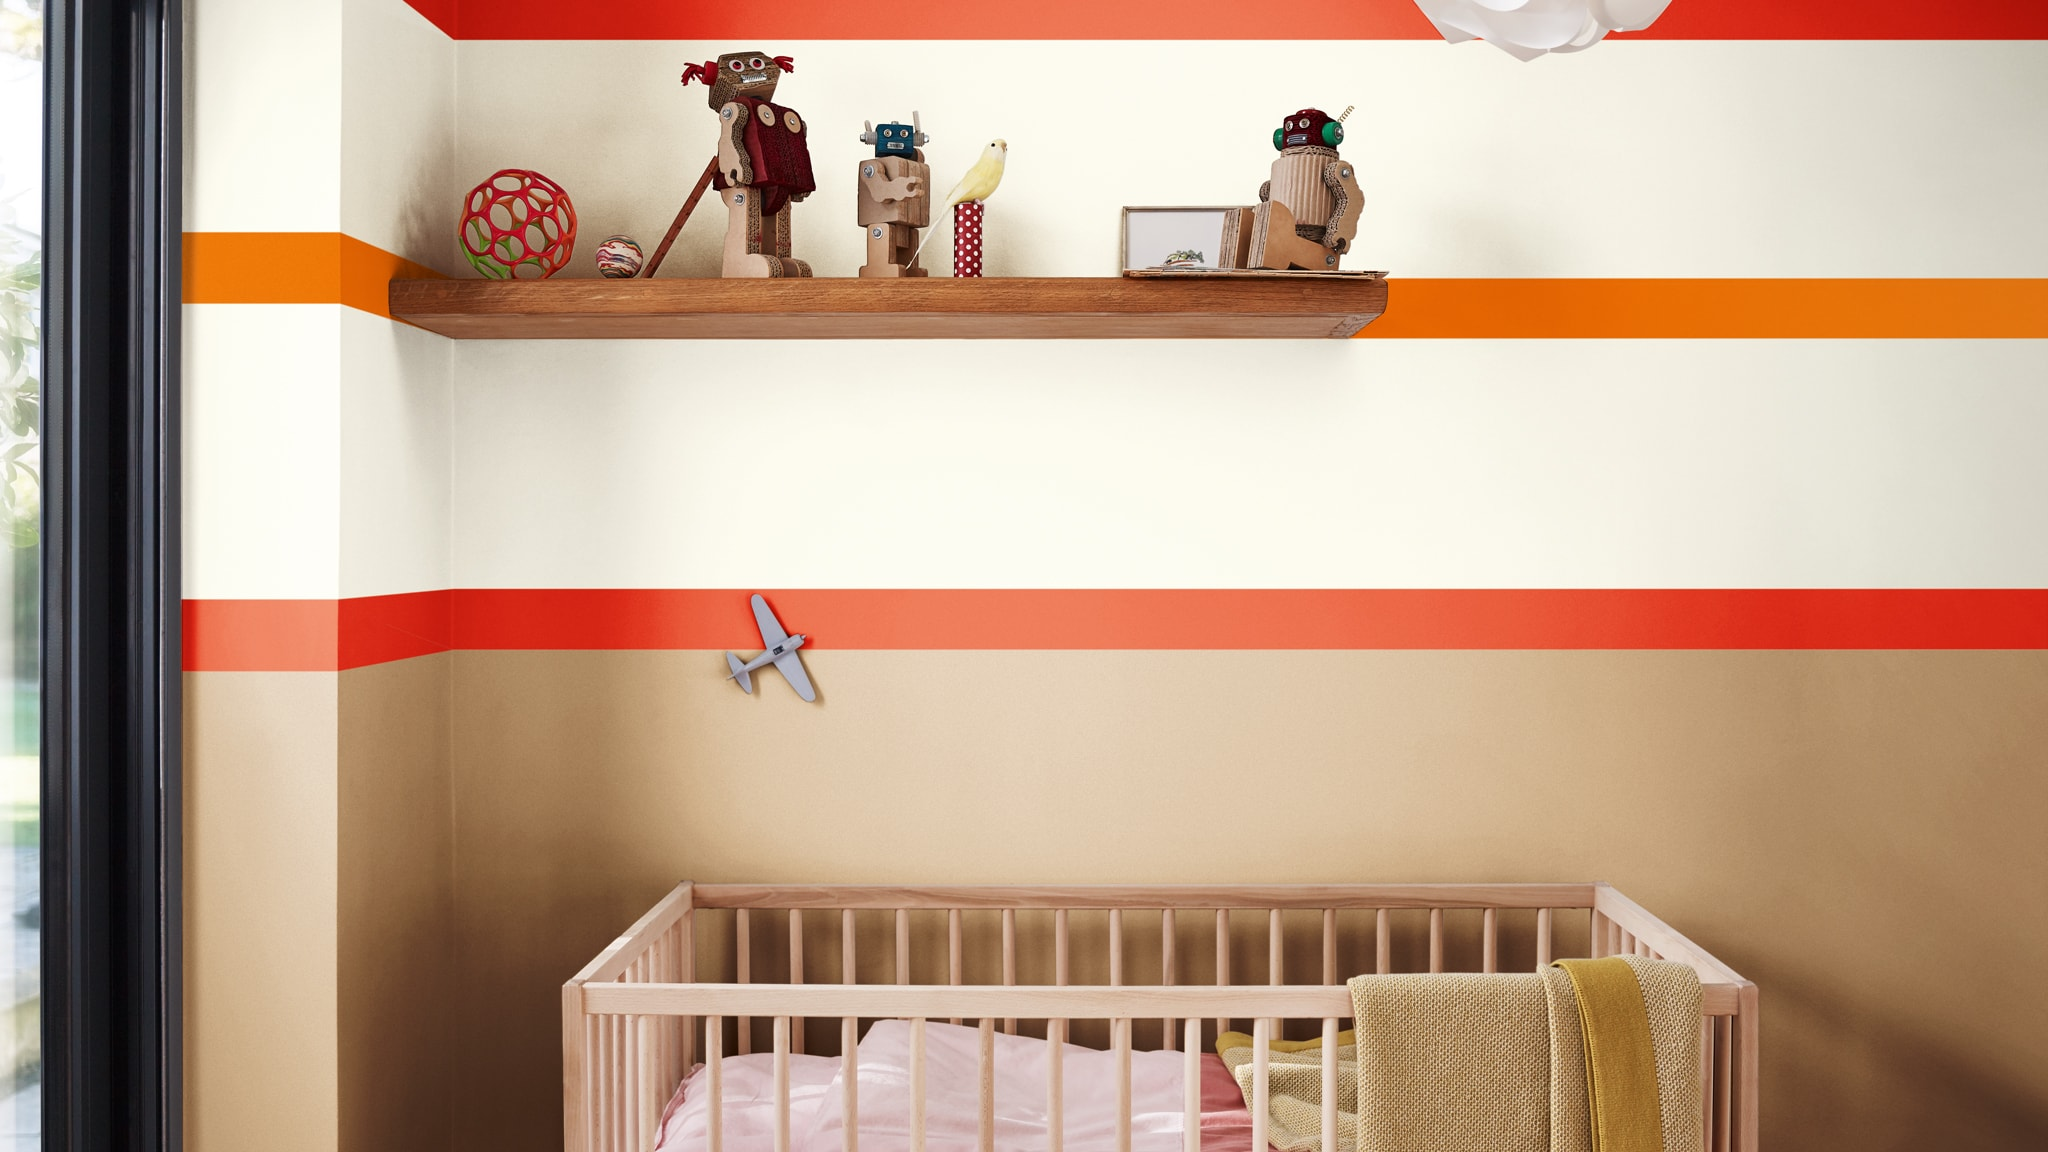 Deco-Paints-Colour-Futures-Colour-of-the-Year-2019-A-place-to-act-Kidsroom-Inspiration-44